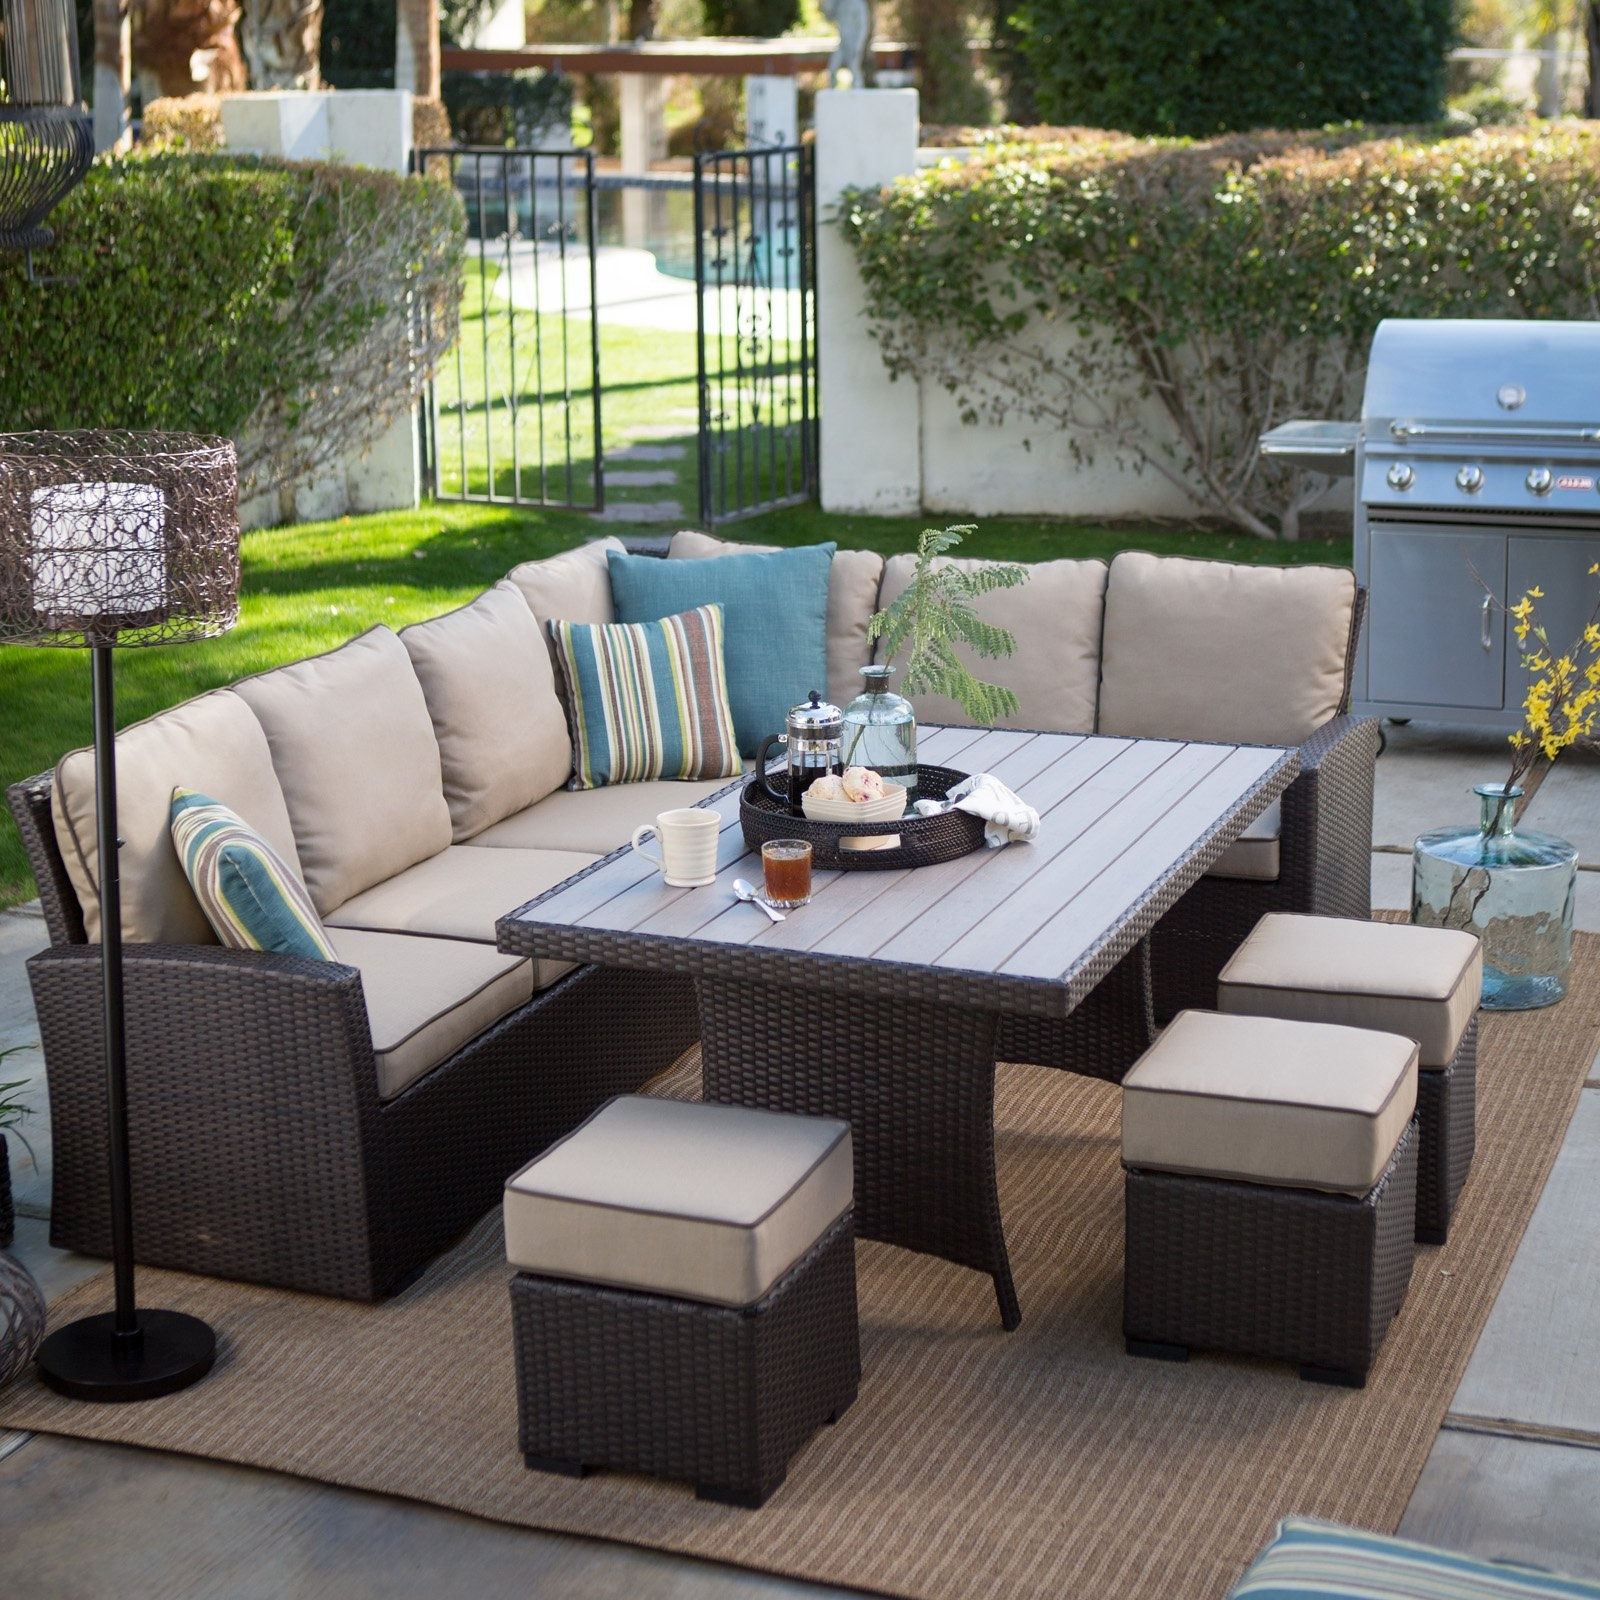 Patio Sectional Conversation Sets With Regard To Famous Belham Living Monticello All Weather Wicker Sofa Sectional Patio (View 7 of 20)